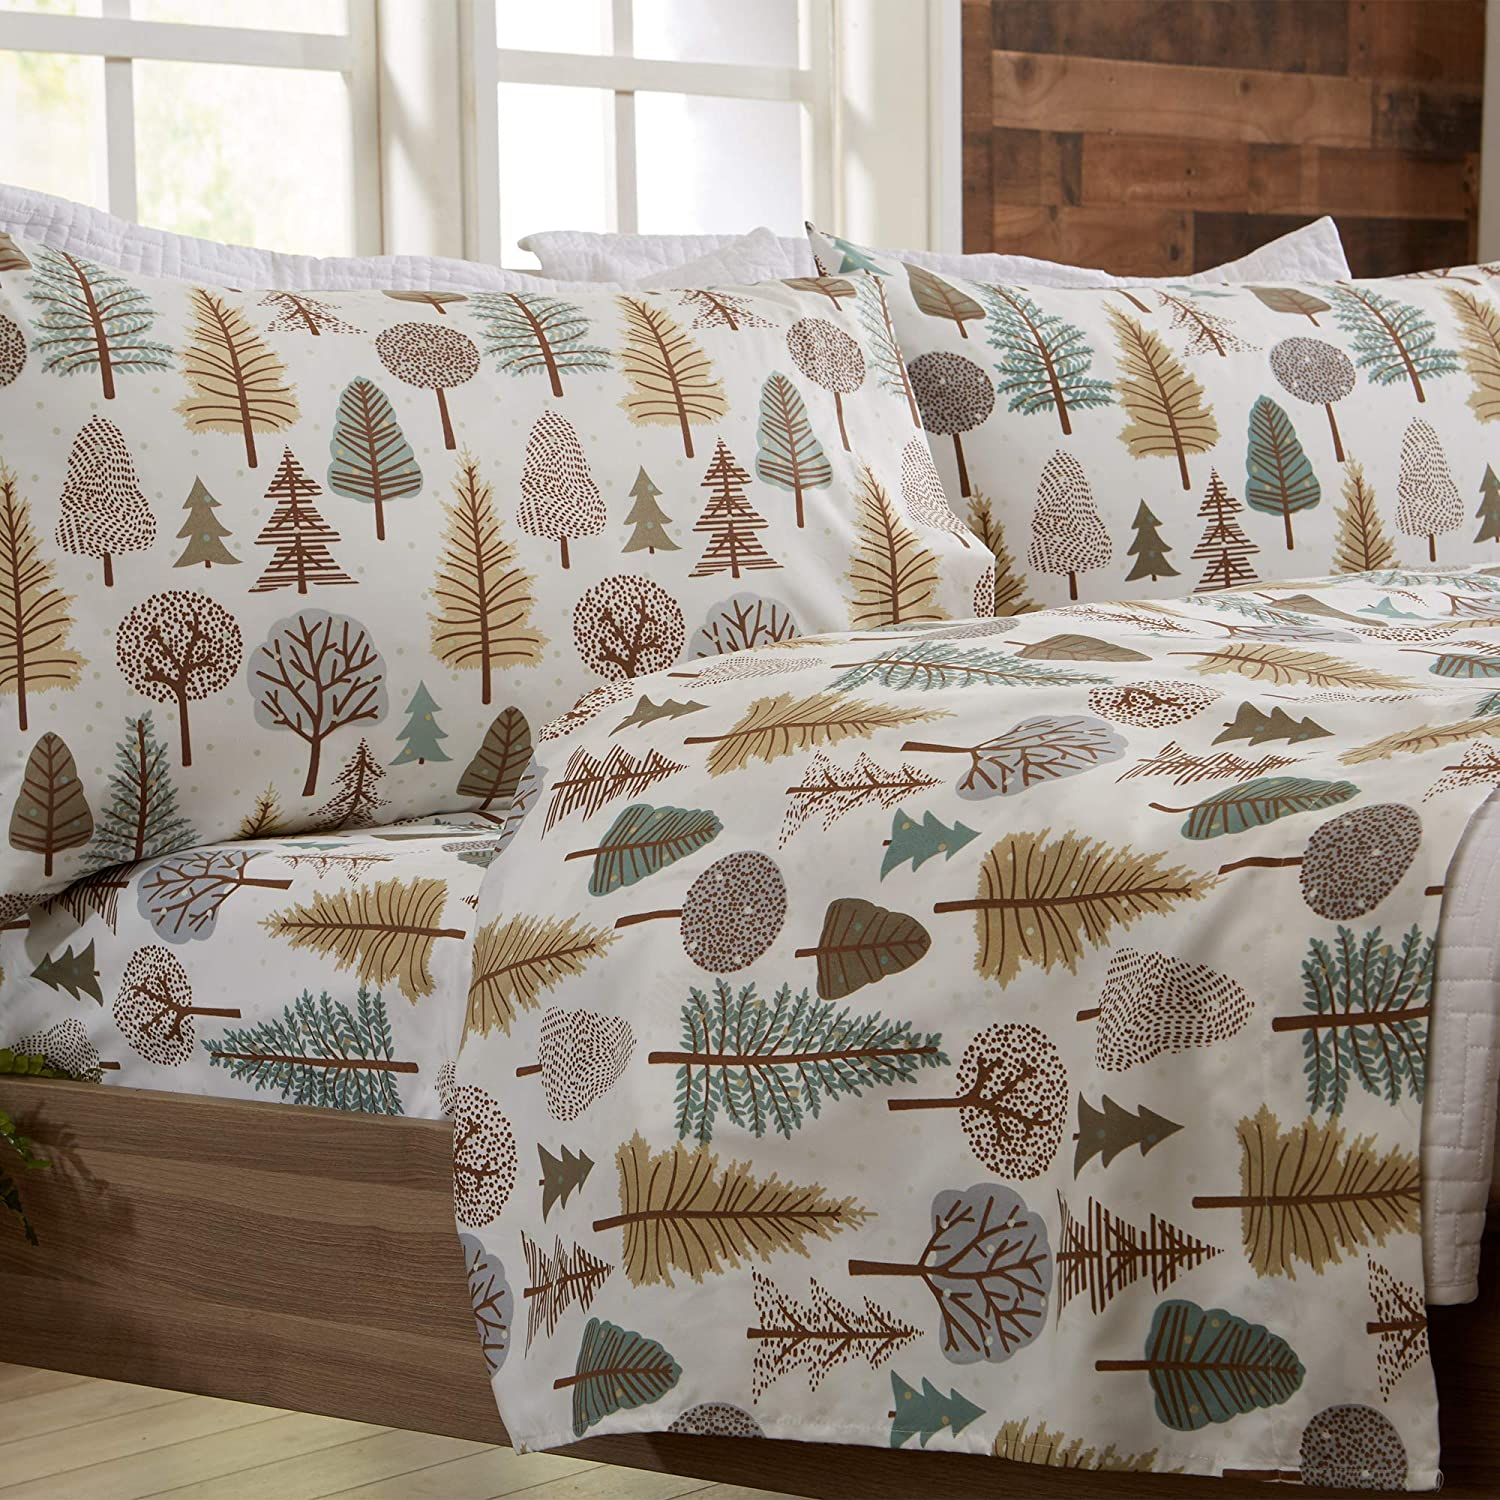 3-Piece Lodge Printed Ultra-Soft Microfiber Sheet Set. Beautiful Patterns Drawn from Nature, Comfortable, All-Season Bed Sheets. (Twin, Forest Trail)